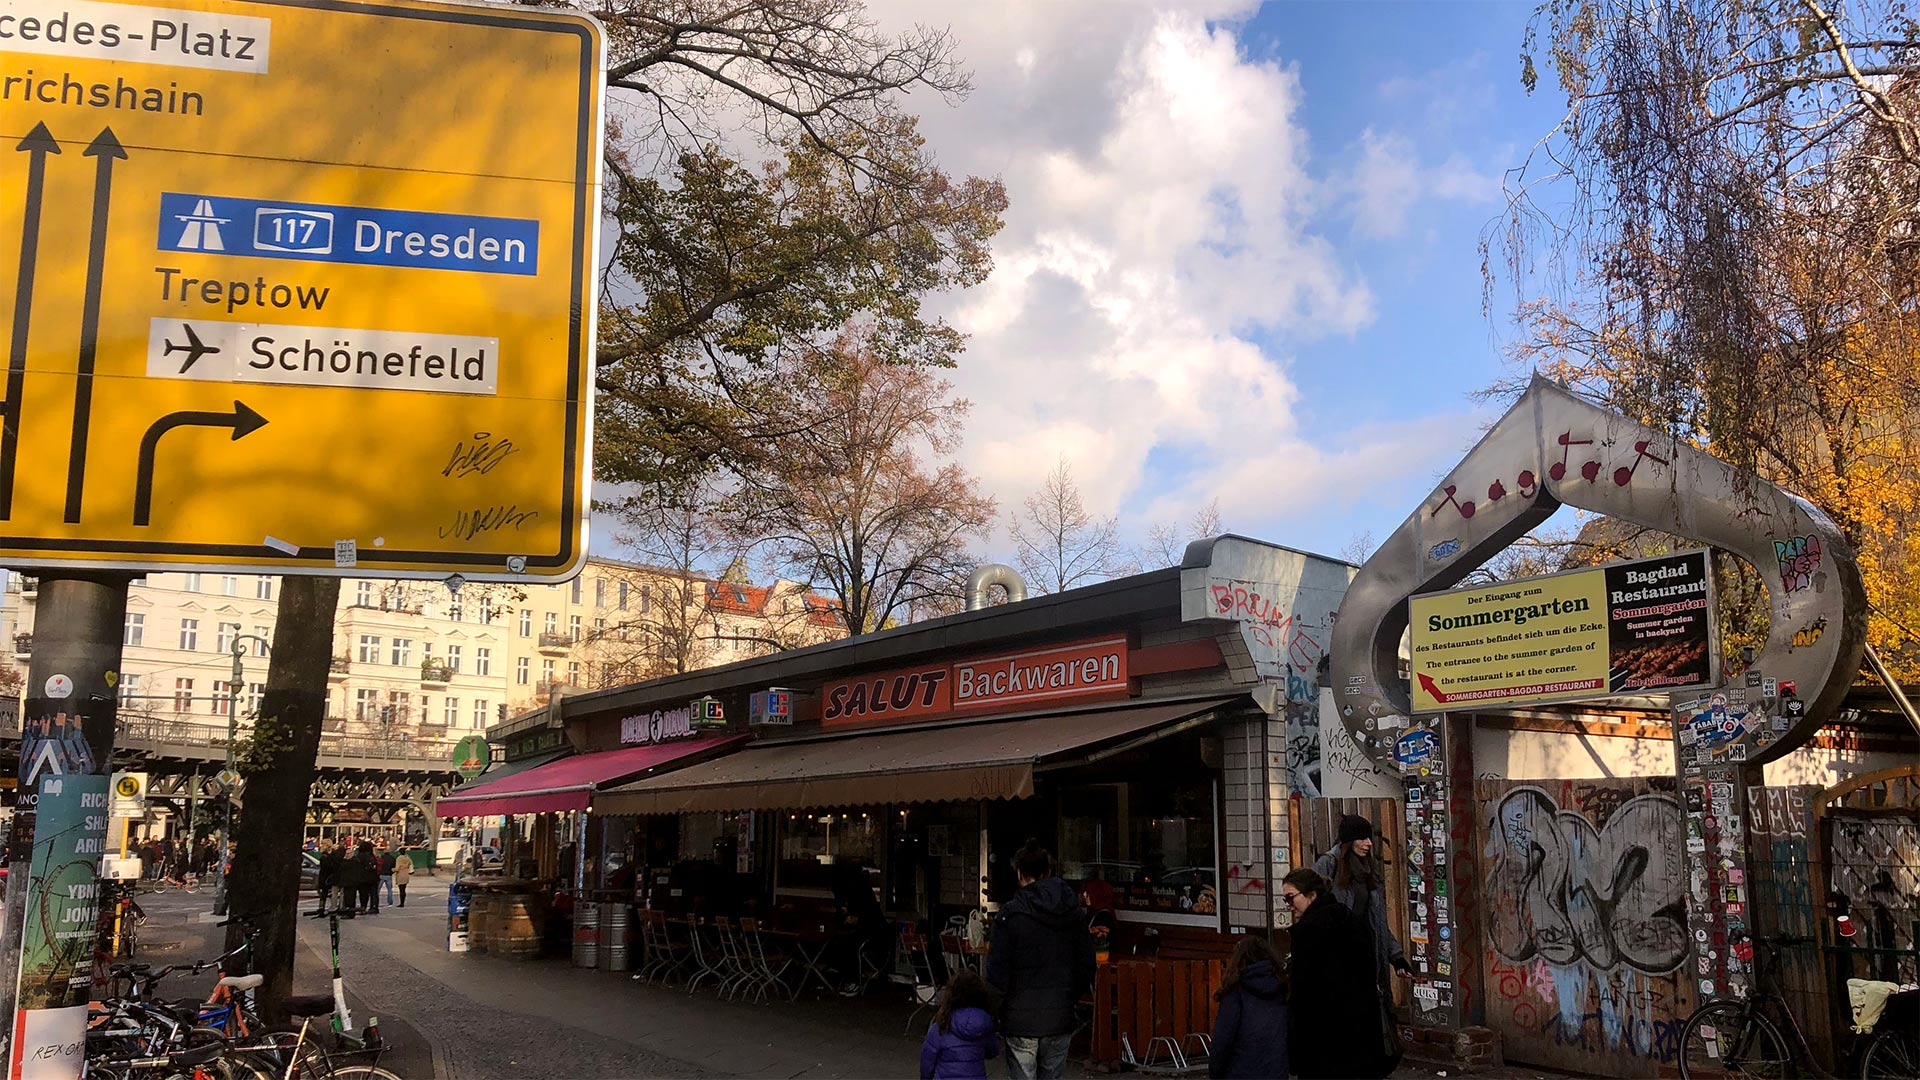 The view of Oppelner Strasse in a multicultural neighborhood in Berlin, Germany.